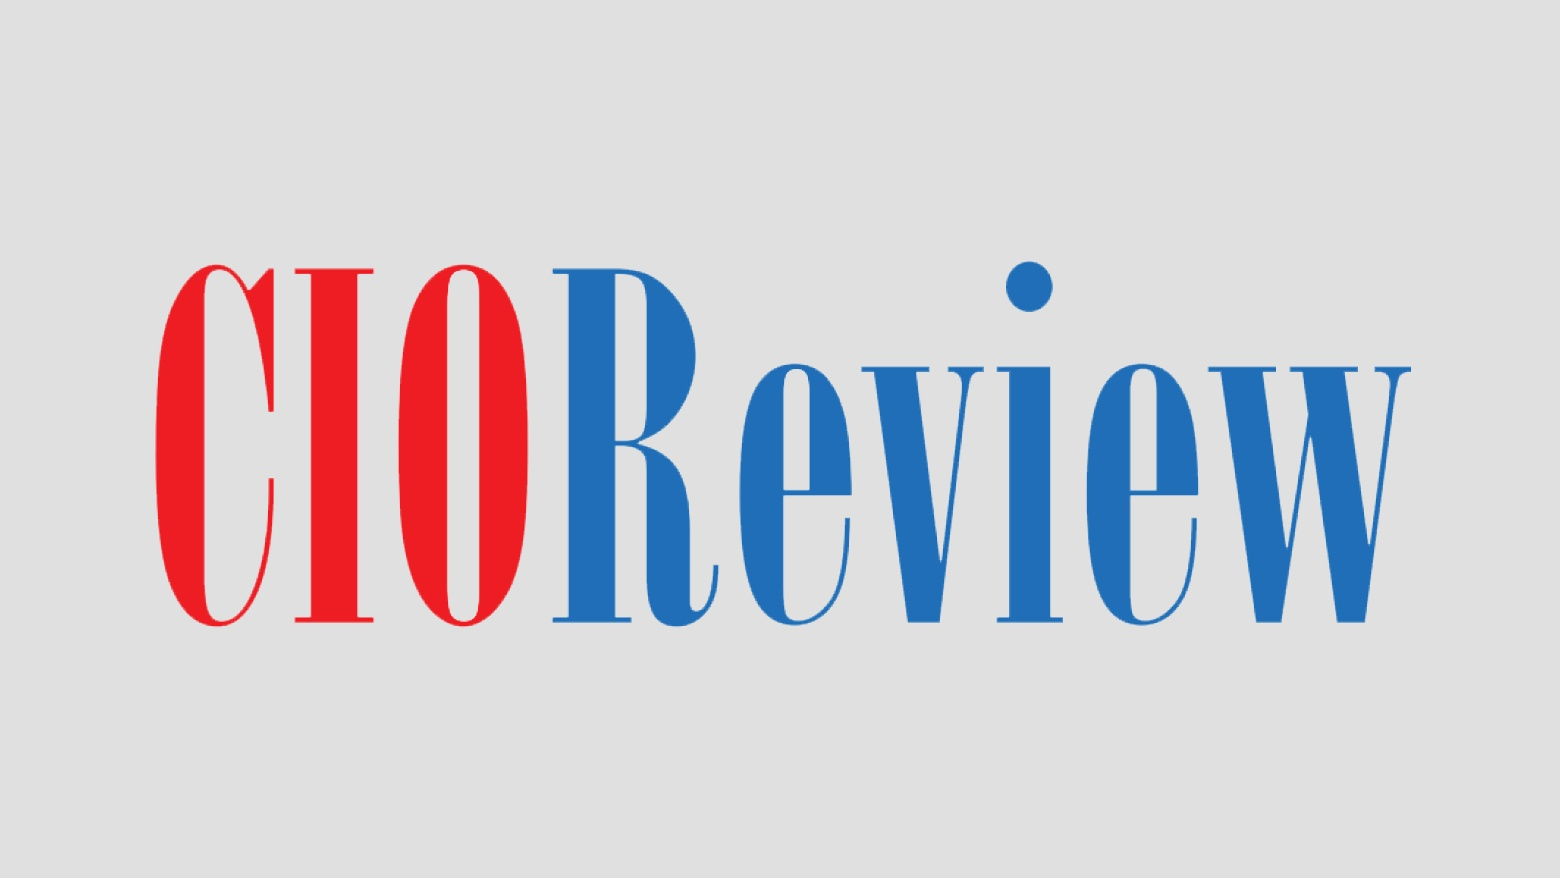 Yext Named To CIOReview's 20 Most Promising Financial